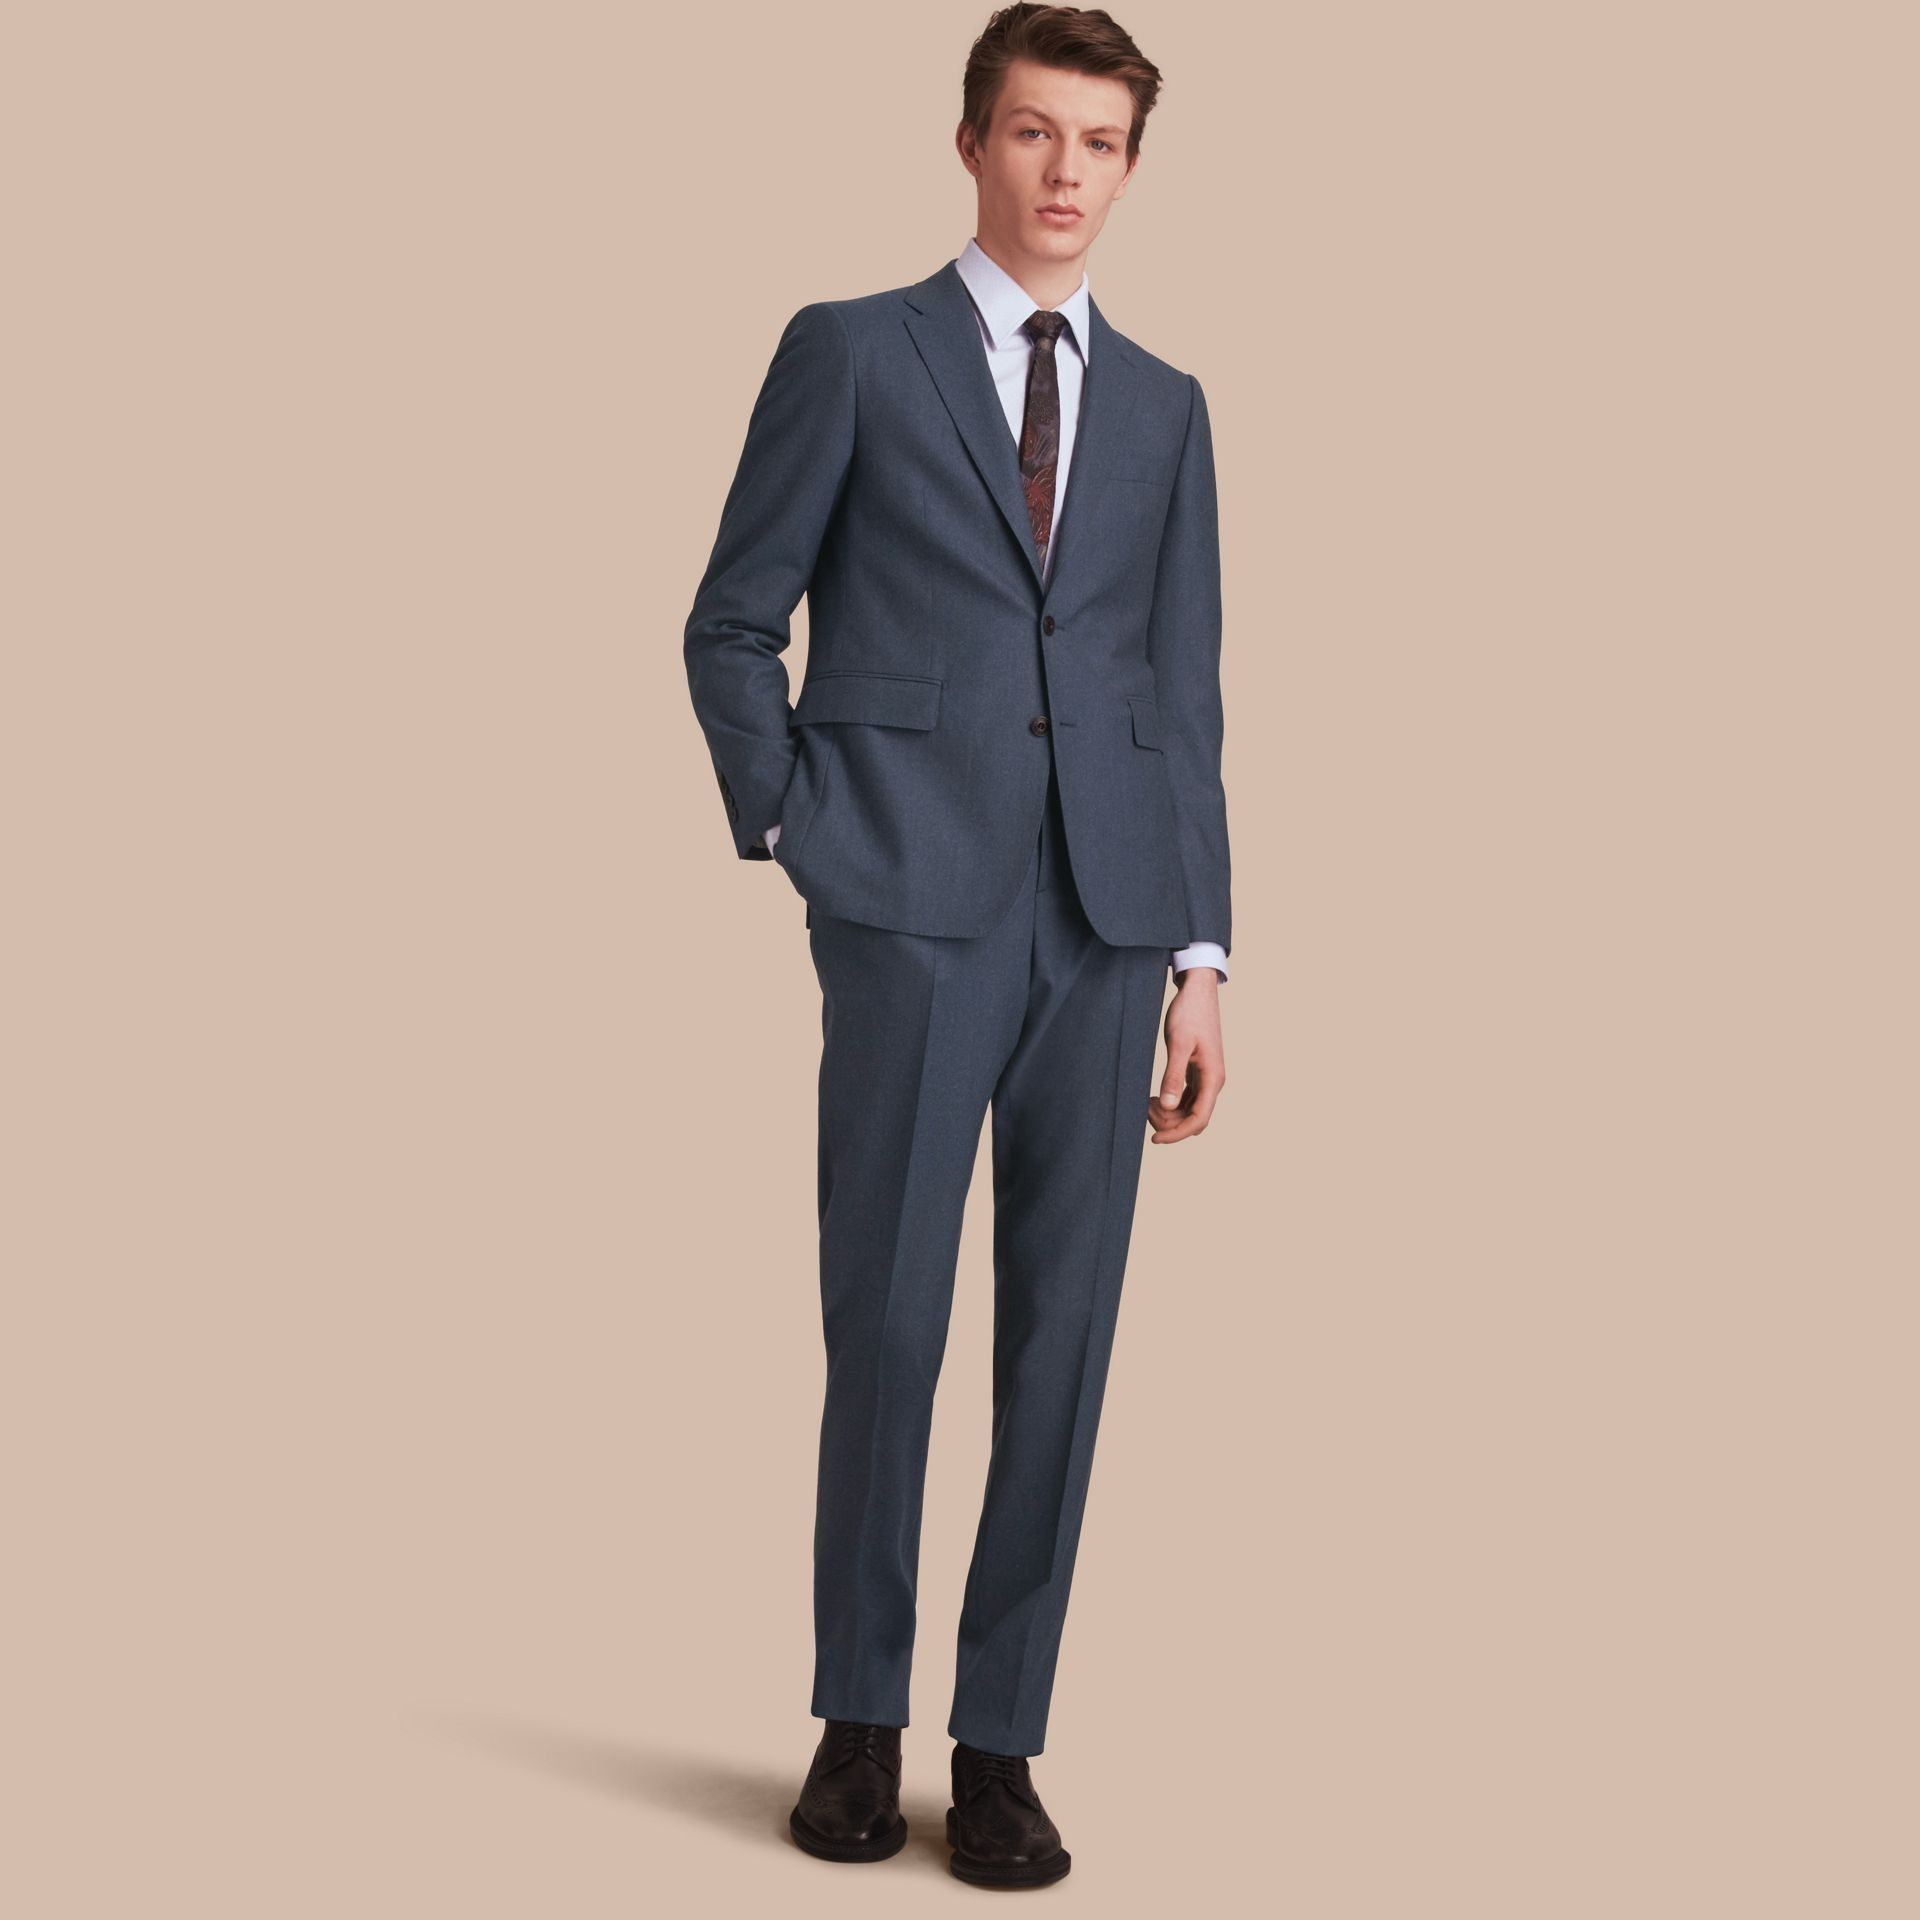 Soho Fit Wool Flannel Suit in Petrol Blue Melange - Men | Burberry - gallery image 1